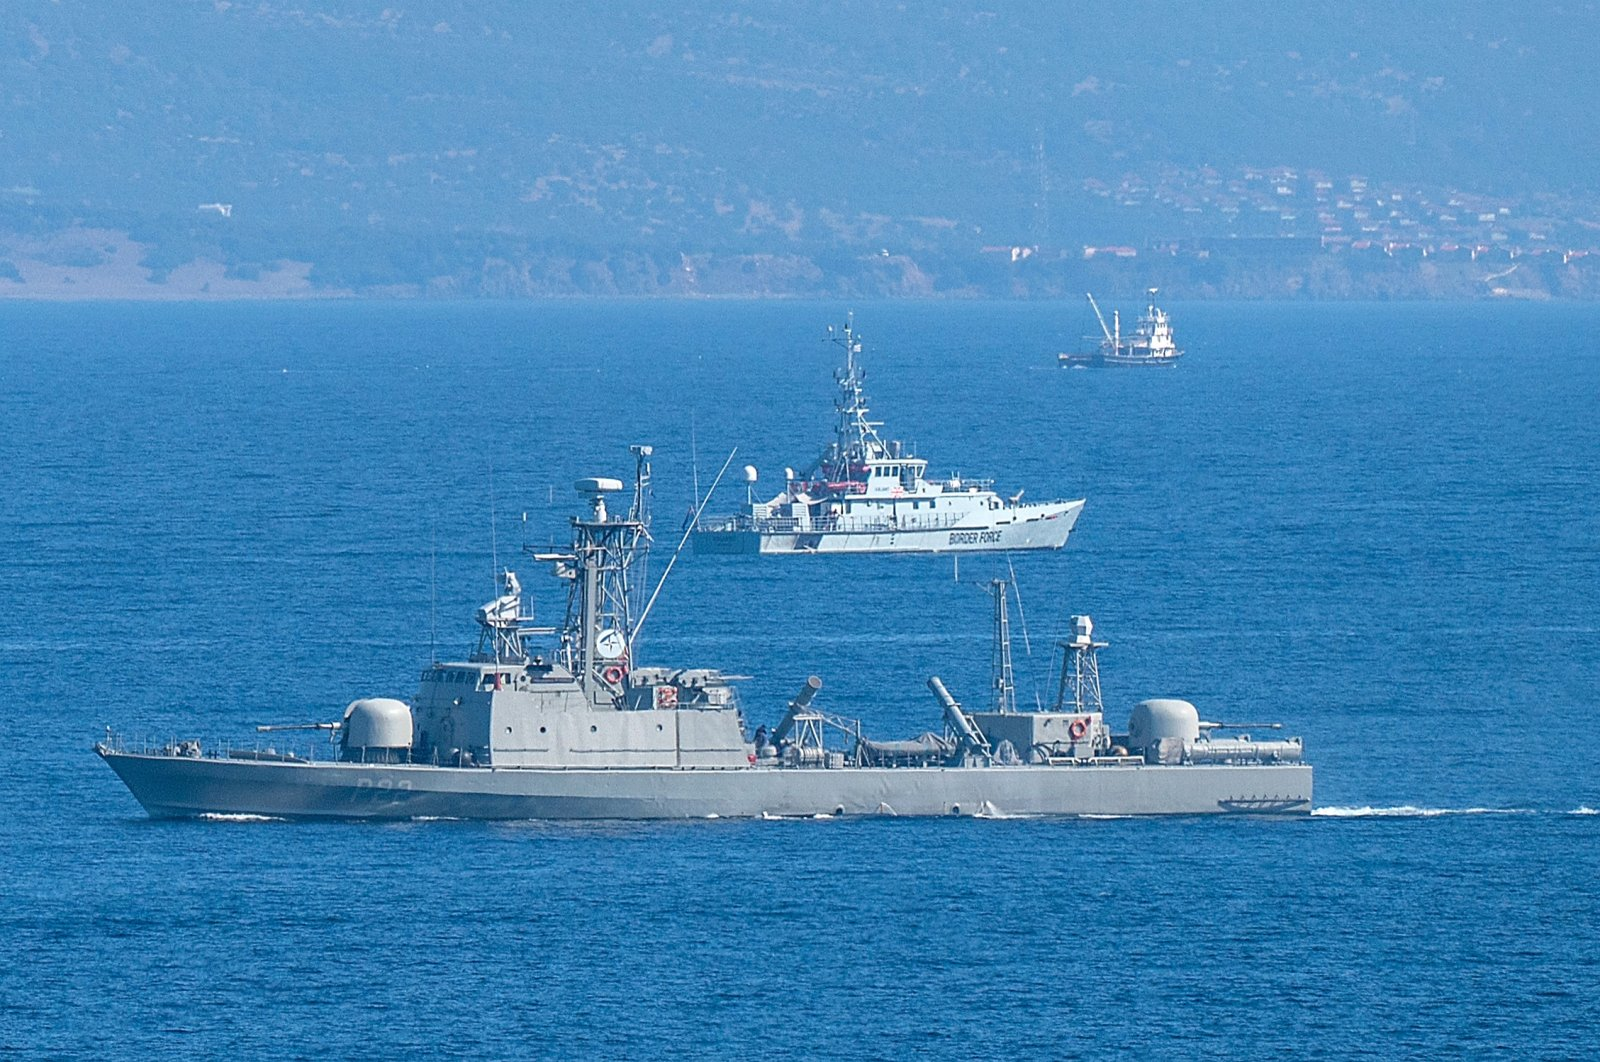 Greek navy ships patrol the Aegean Sea between Turkey and Lesbos Island, October 13, 2019. (Getty Images)